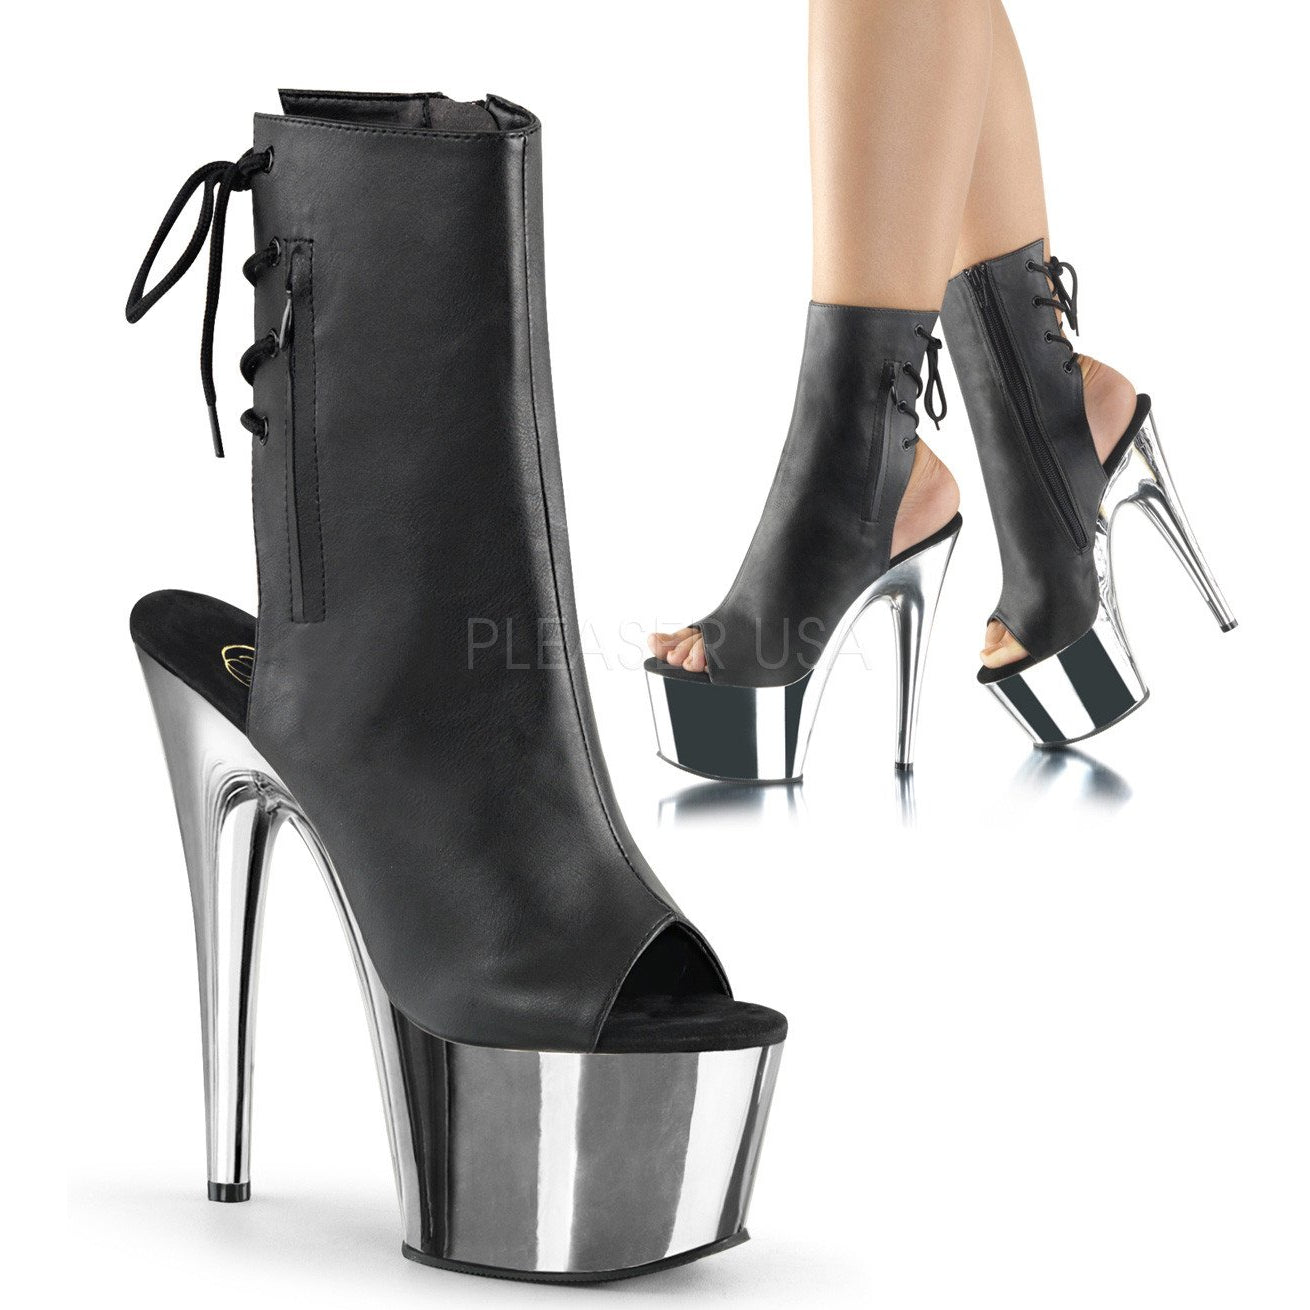 "7"" Open-Toe Boots with Chrome Heel"